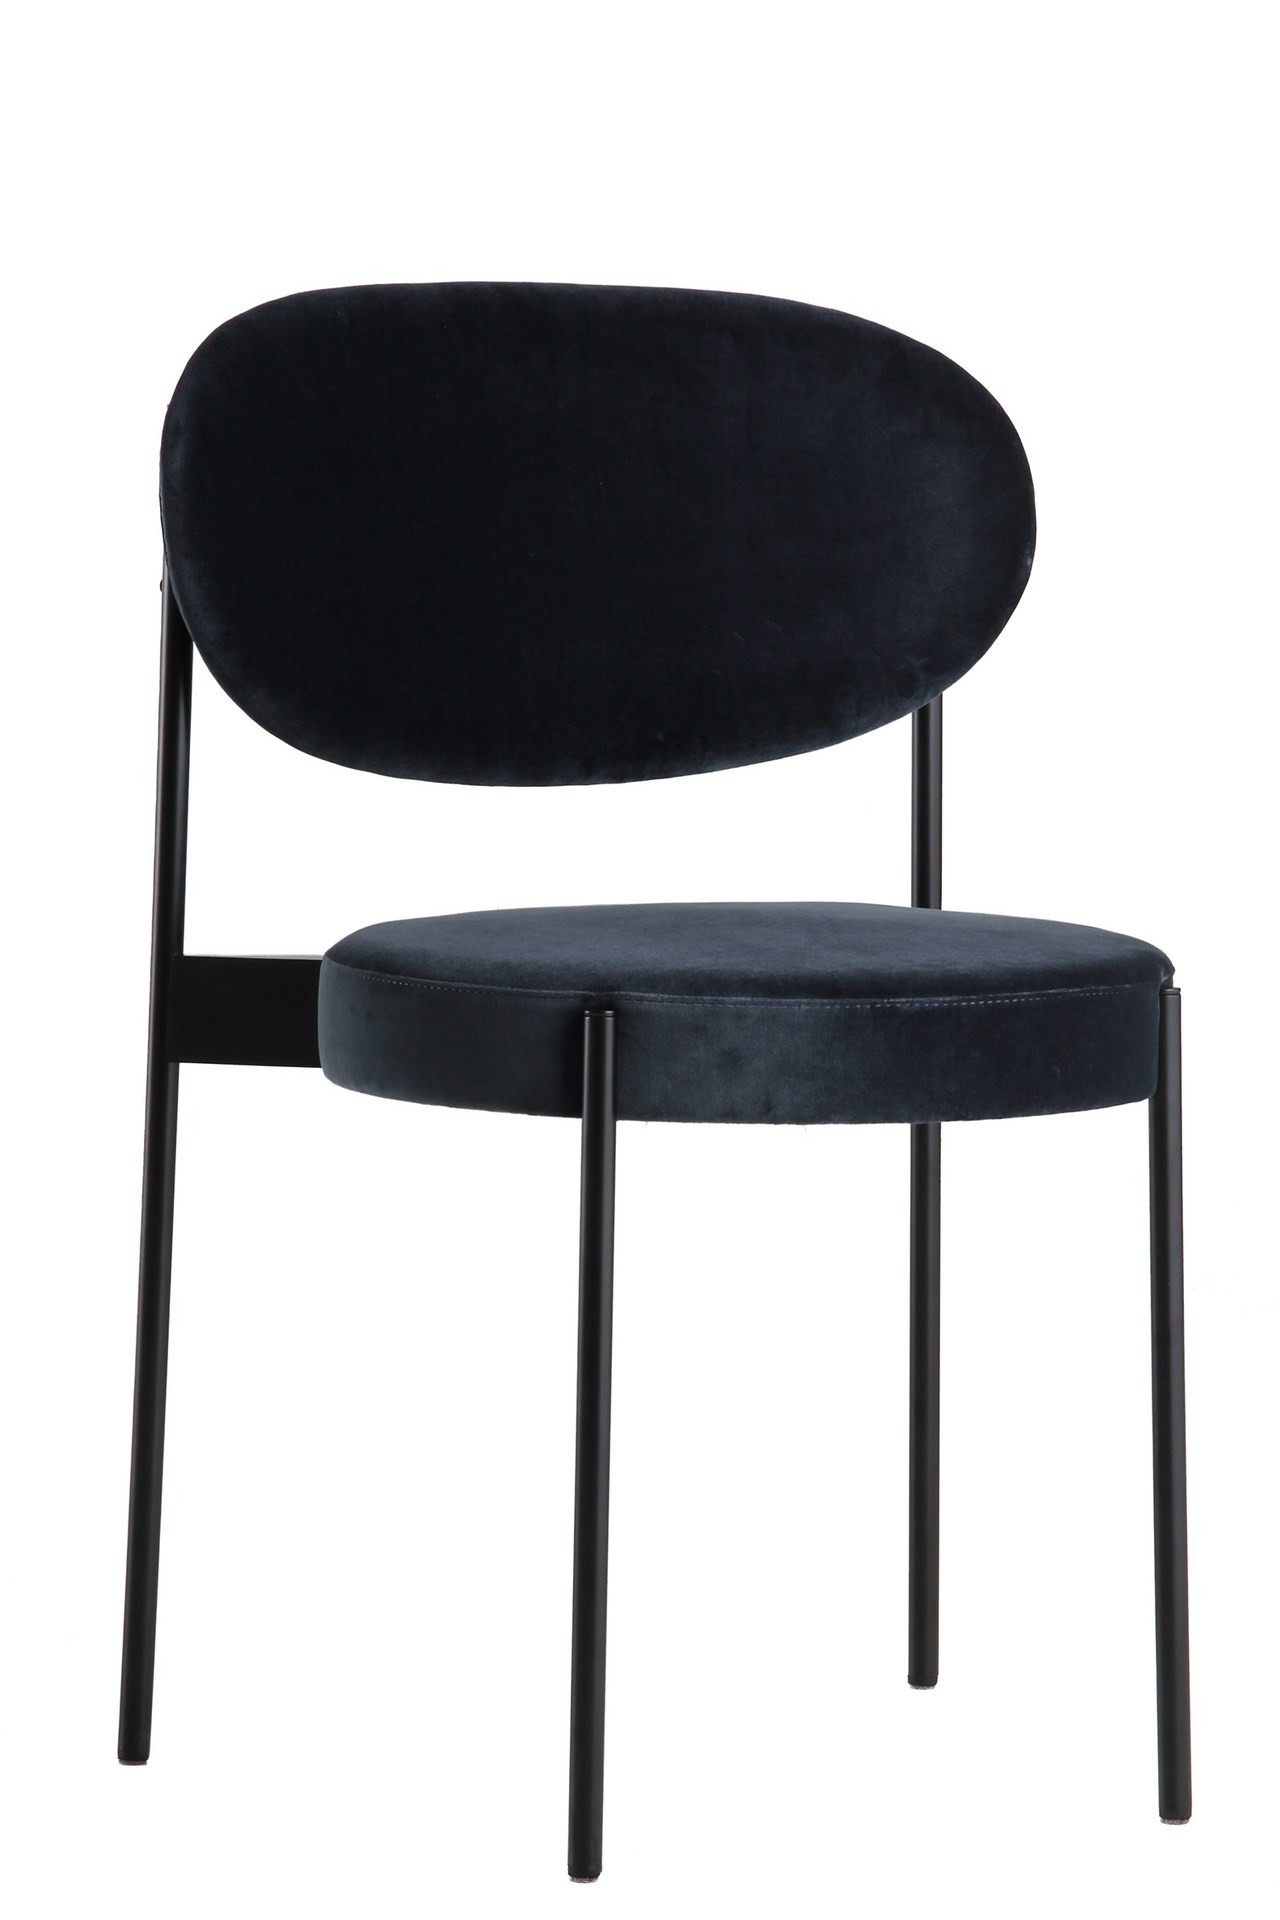 Chaises verner panton perfect pair of chairs vilbert by for Chaise panton